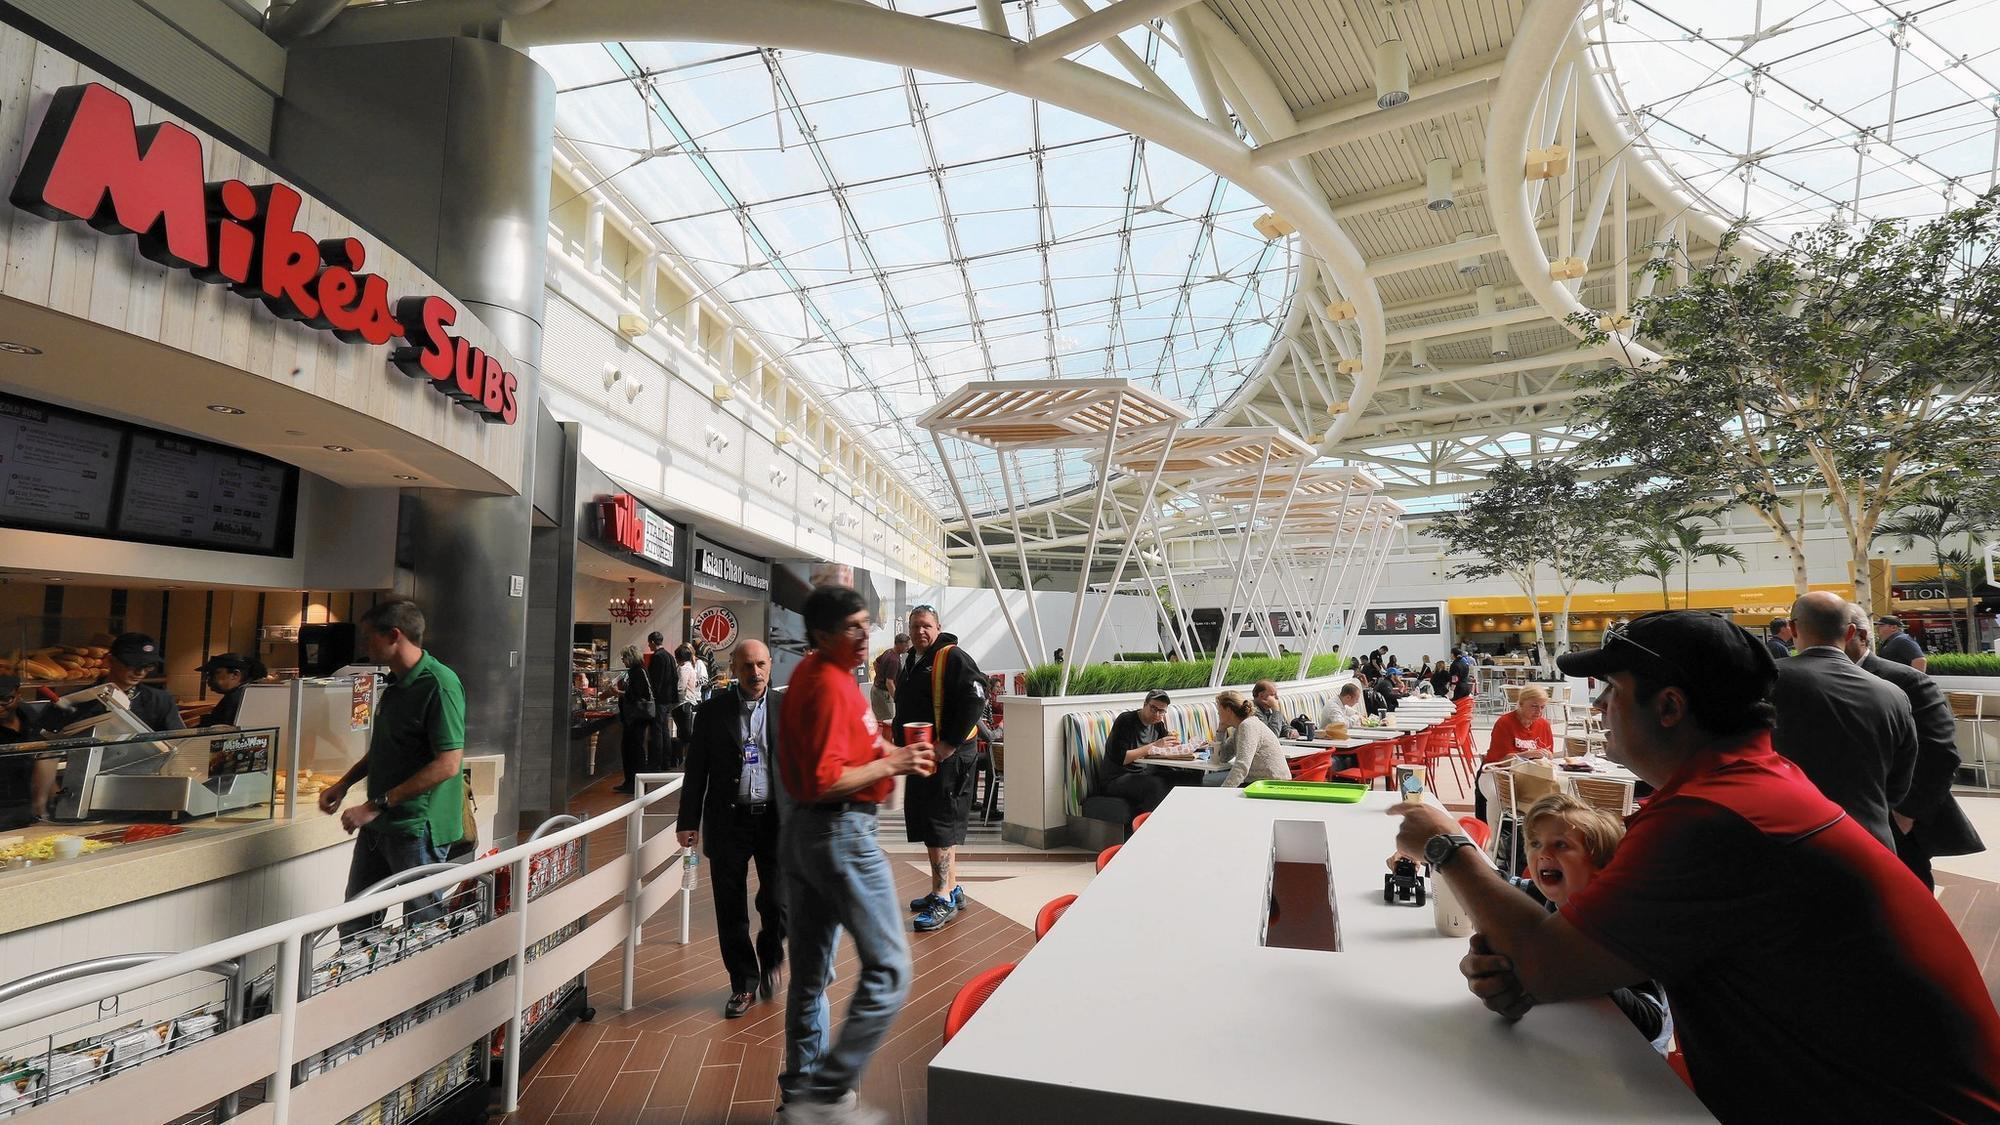 Orlando Airport Eateries Want To Fill 145 Positions At Job